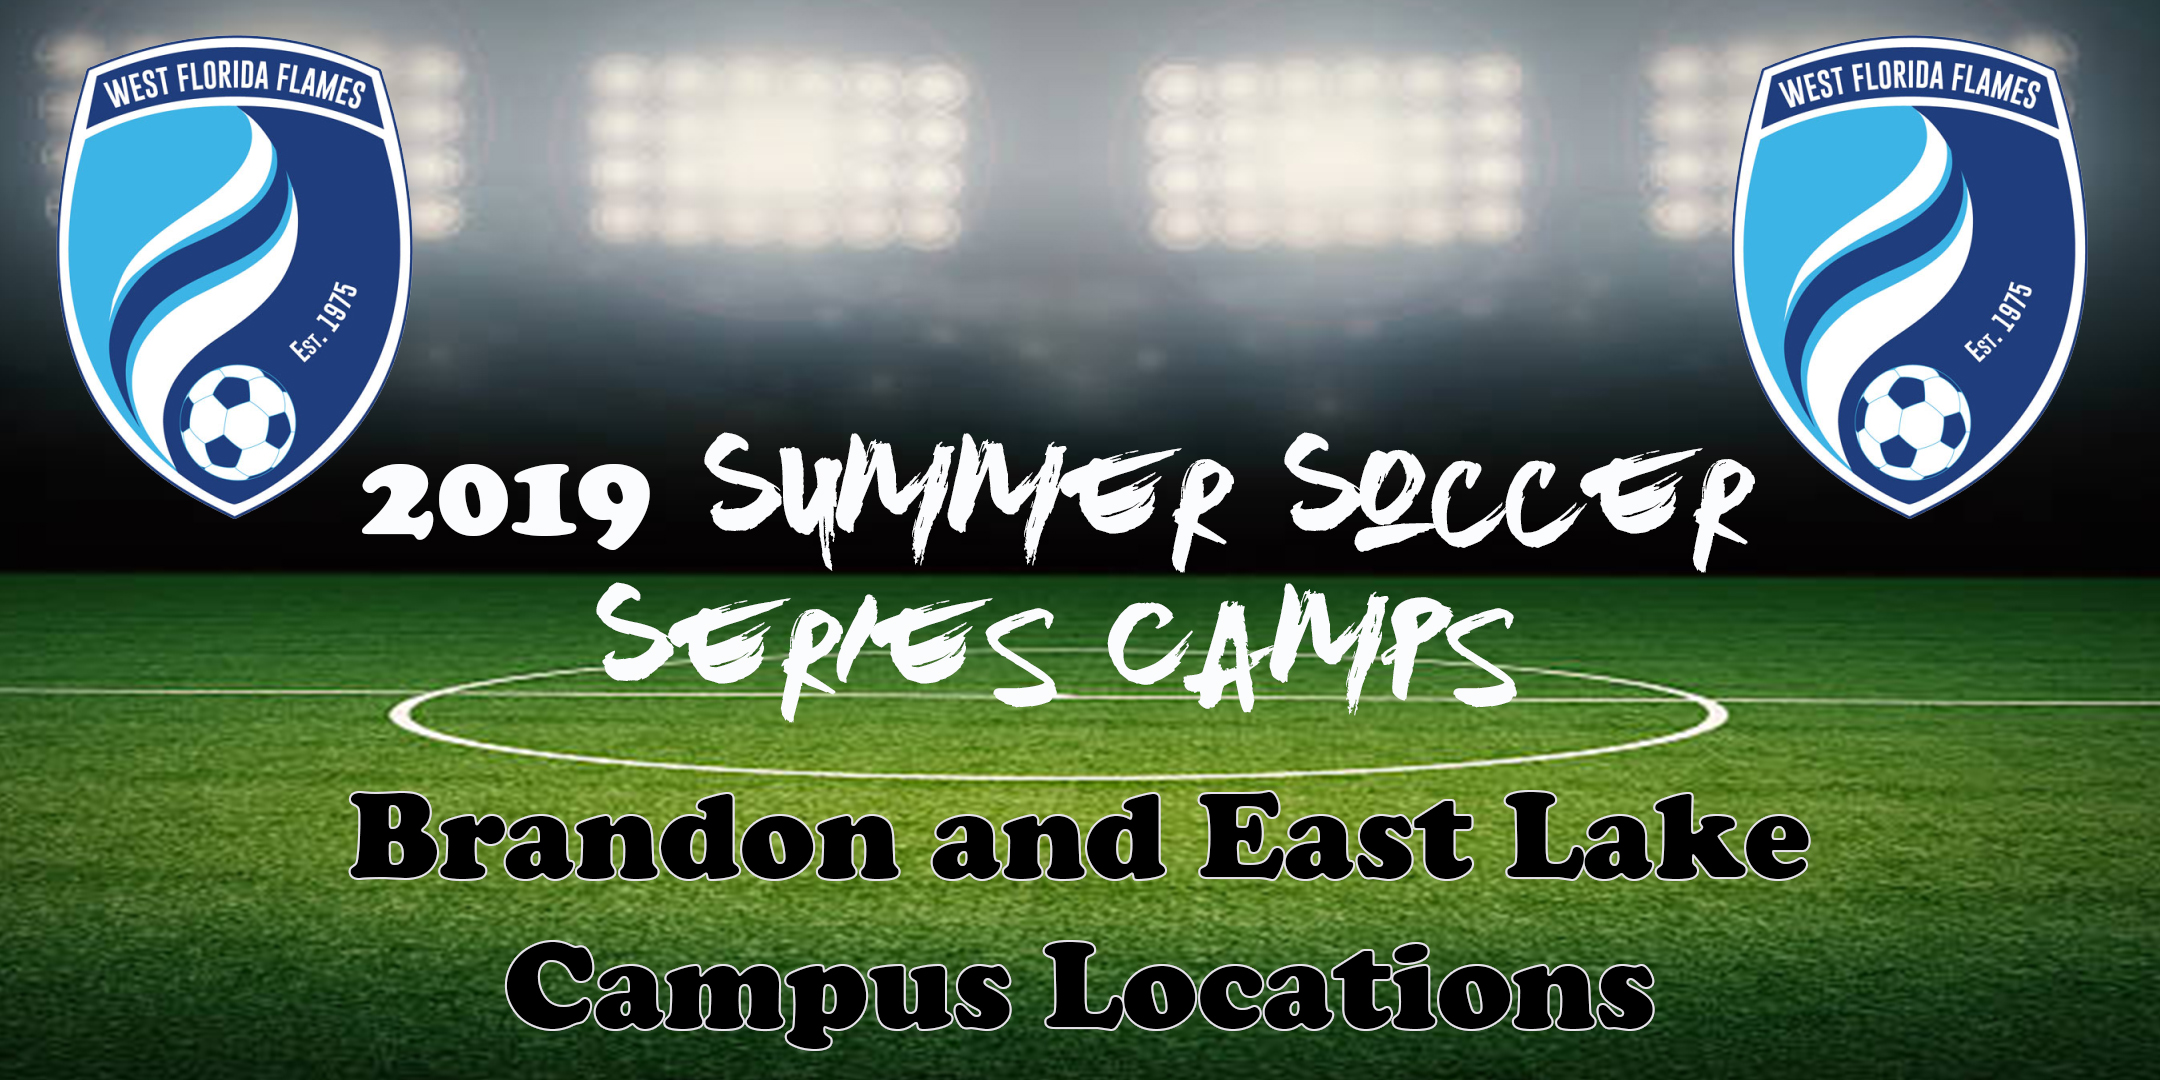 2019 Flames Summer Soccer Series Camps